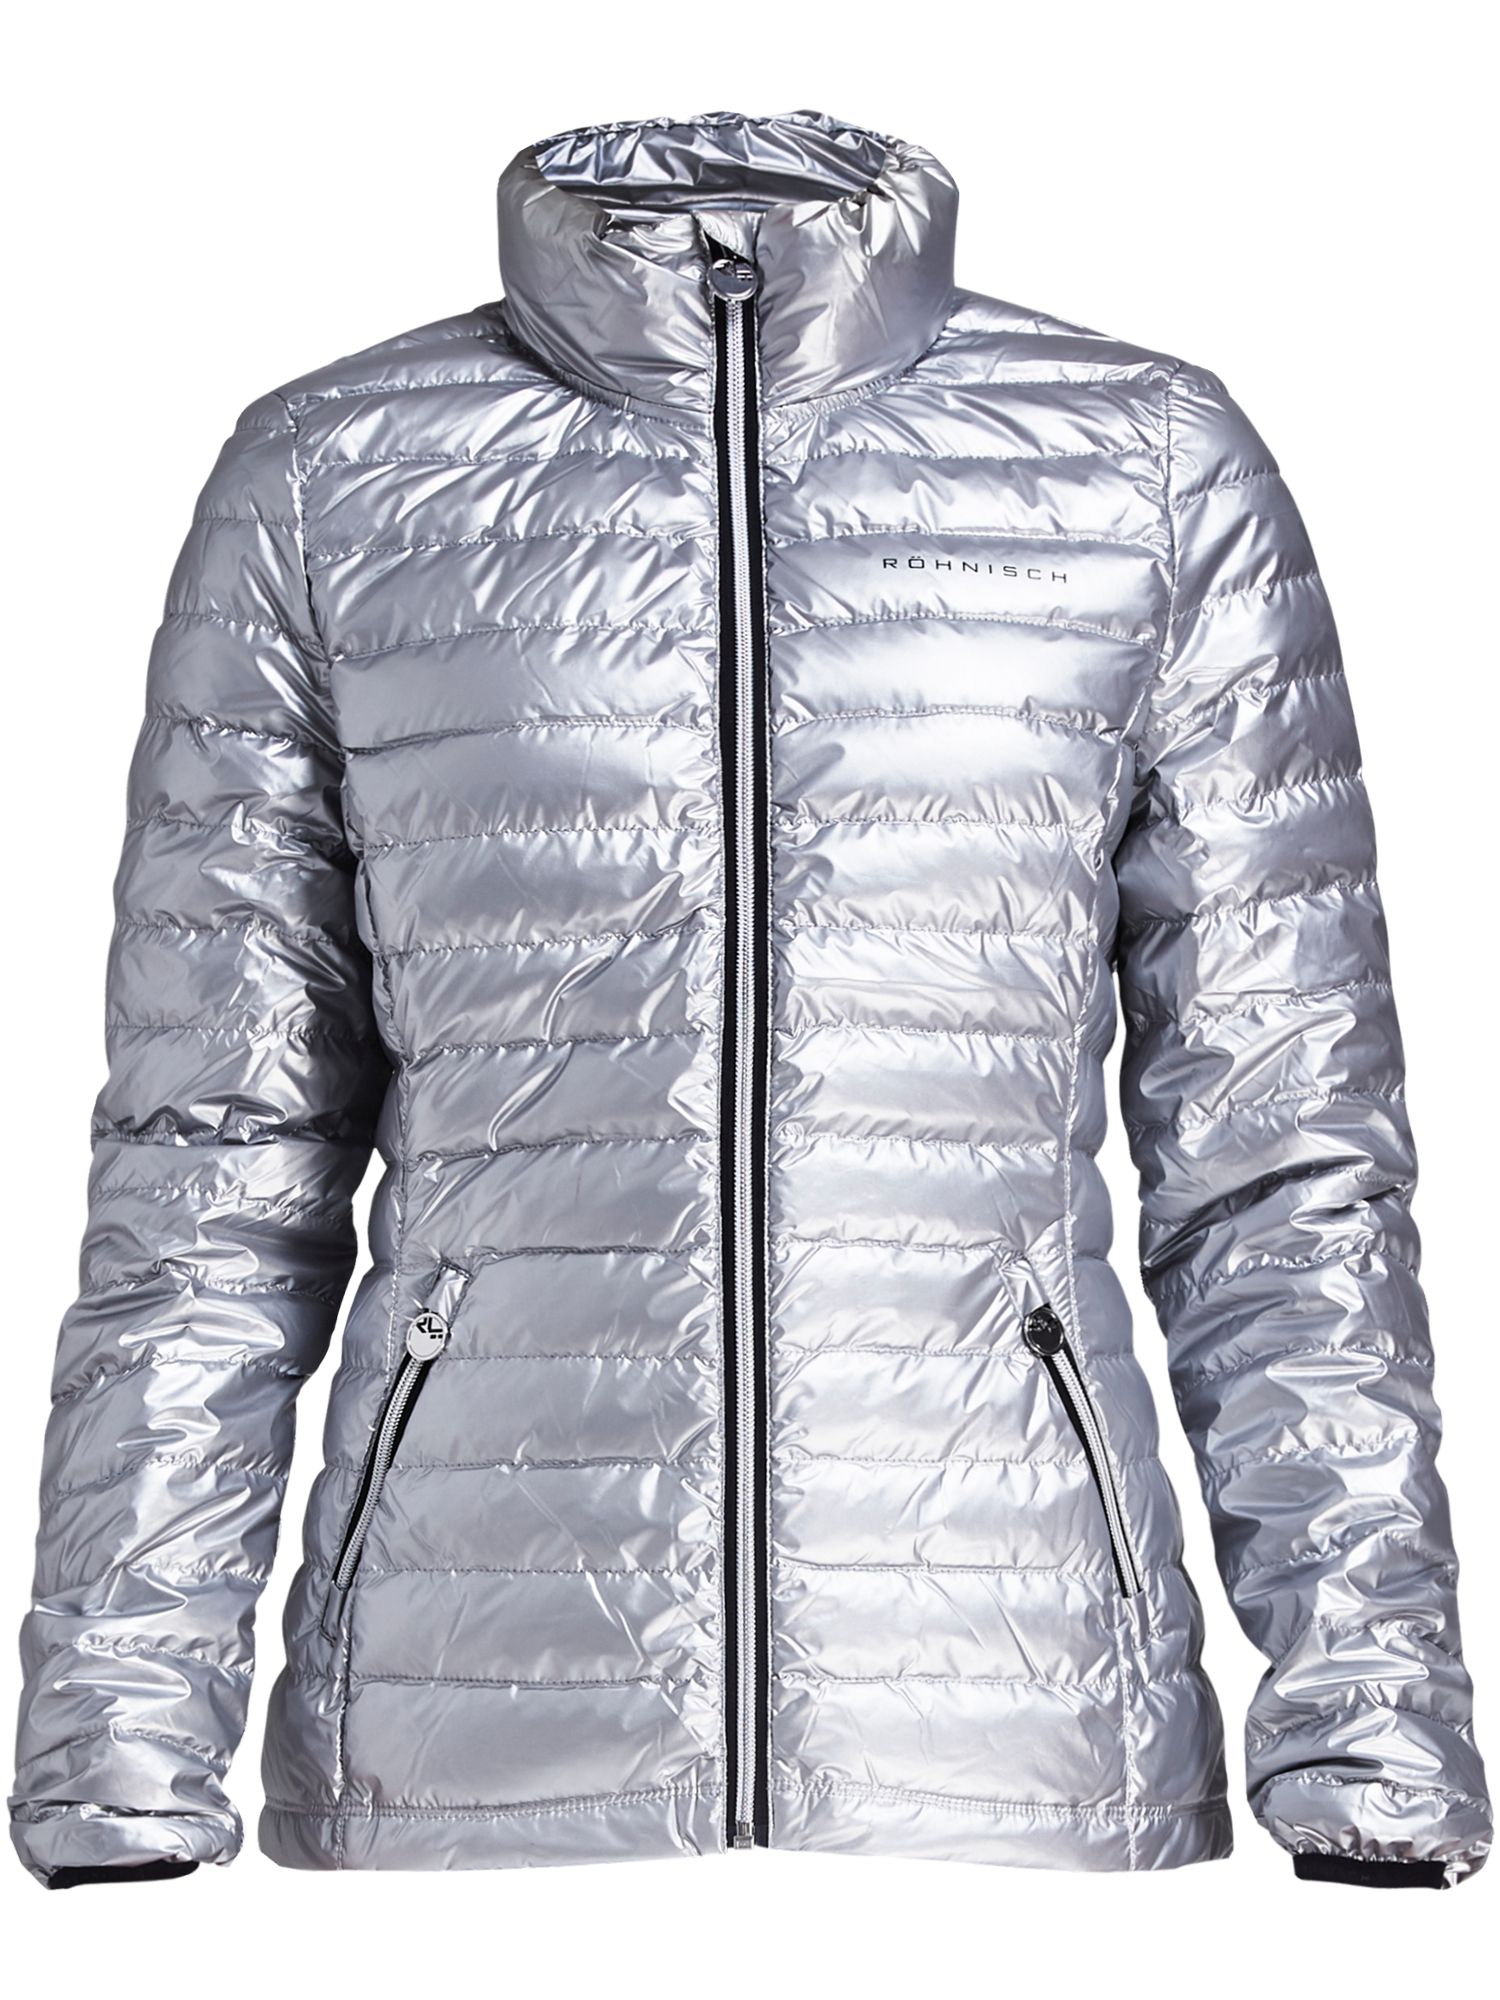 Rohnisch Light Down Jacket, Silver Silverlic